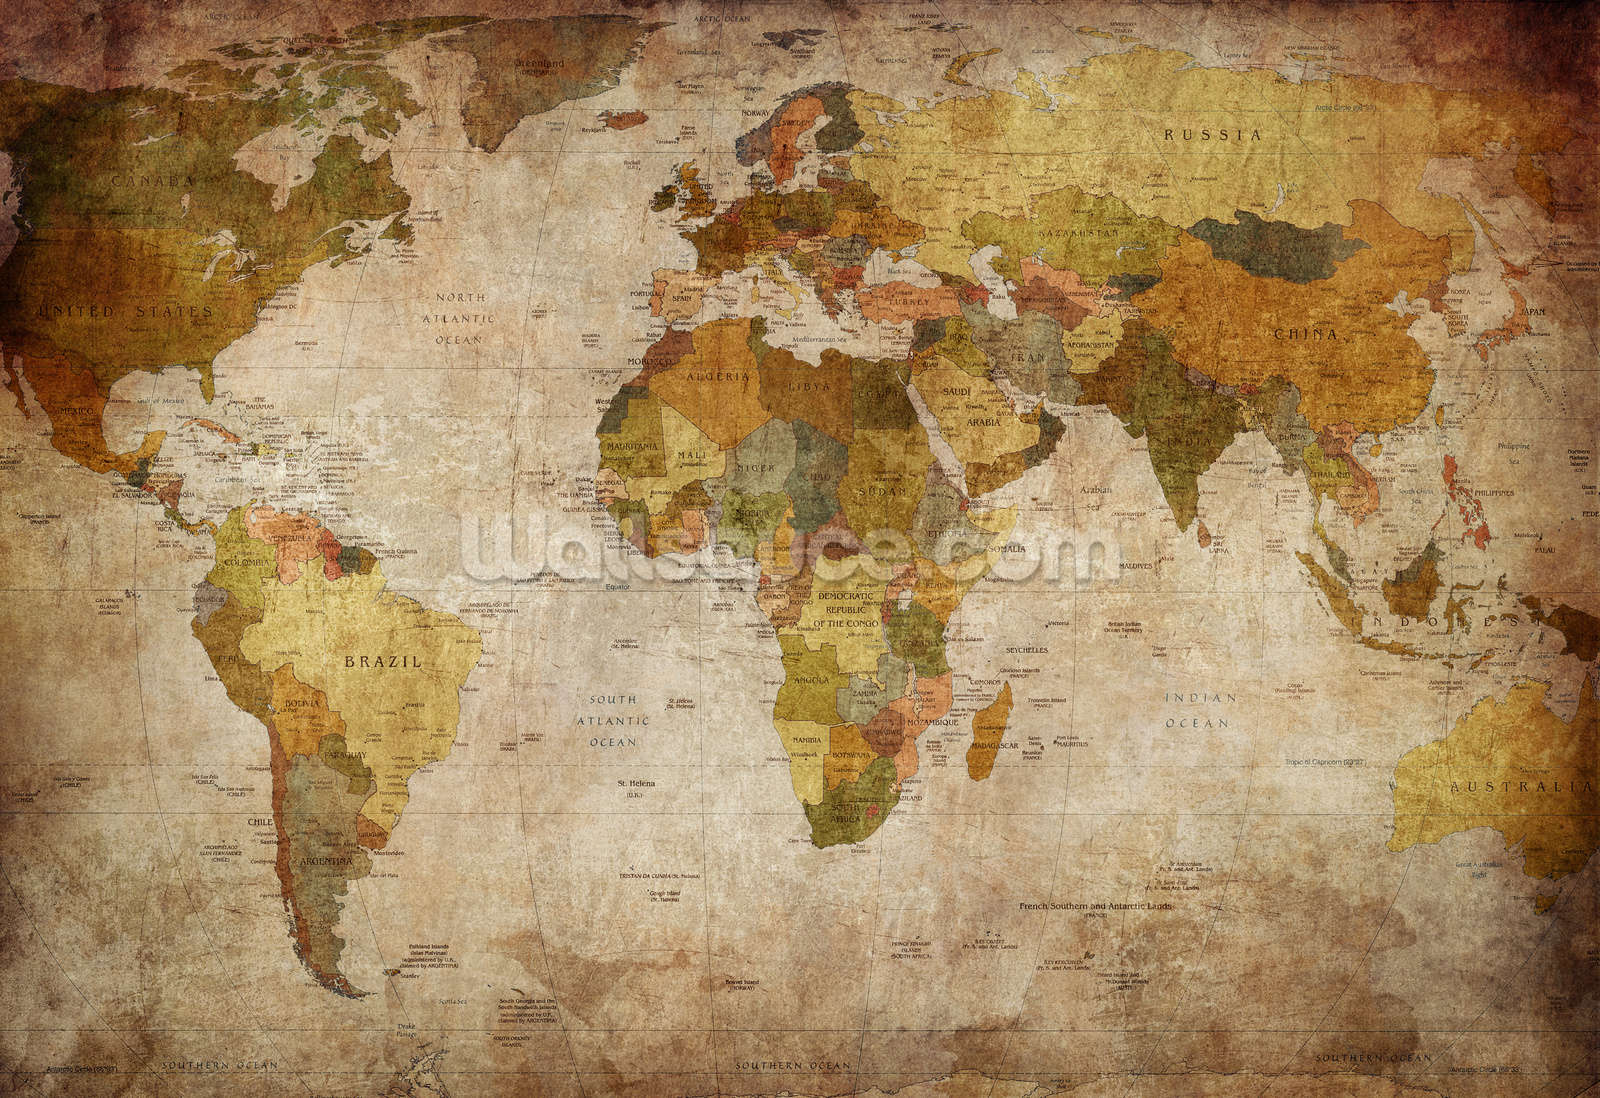 Old Style World Map Wallpaper Mural | Wallsauce UK